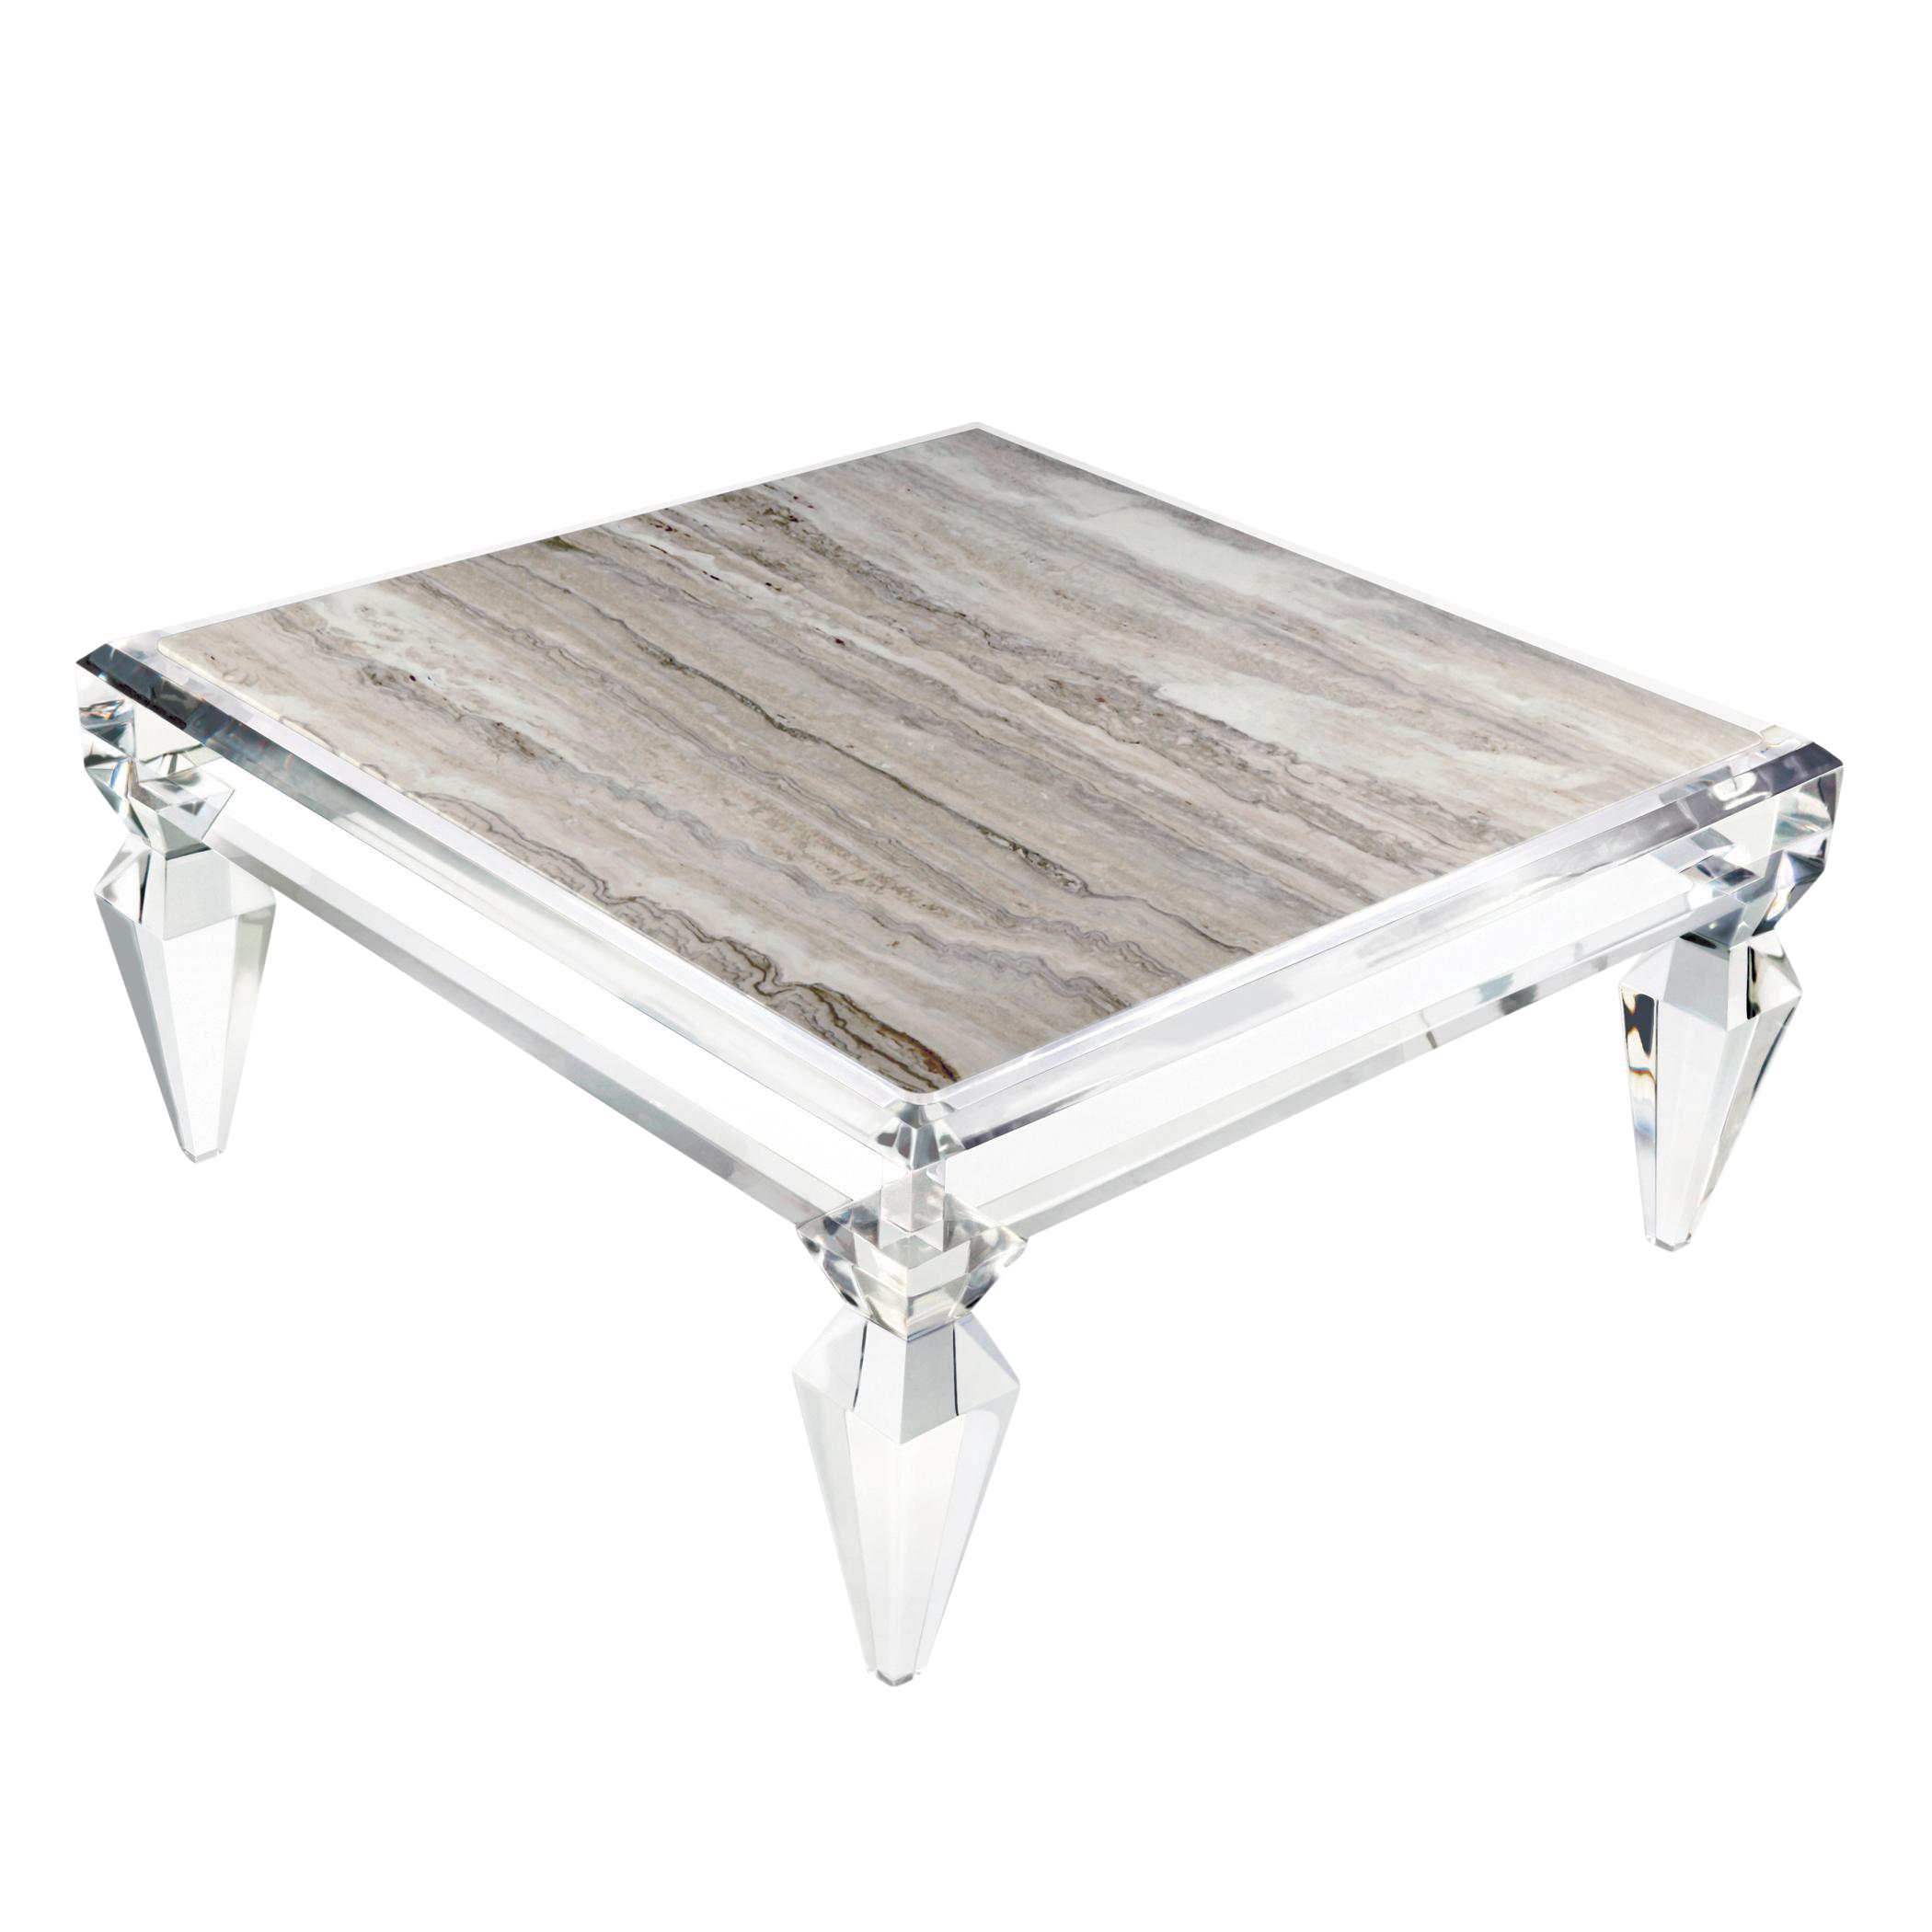 Avenire Lucite Coffee Table By Craig Van Den Brulle 6363 On